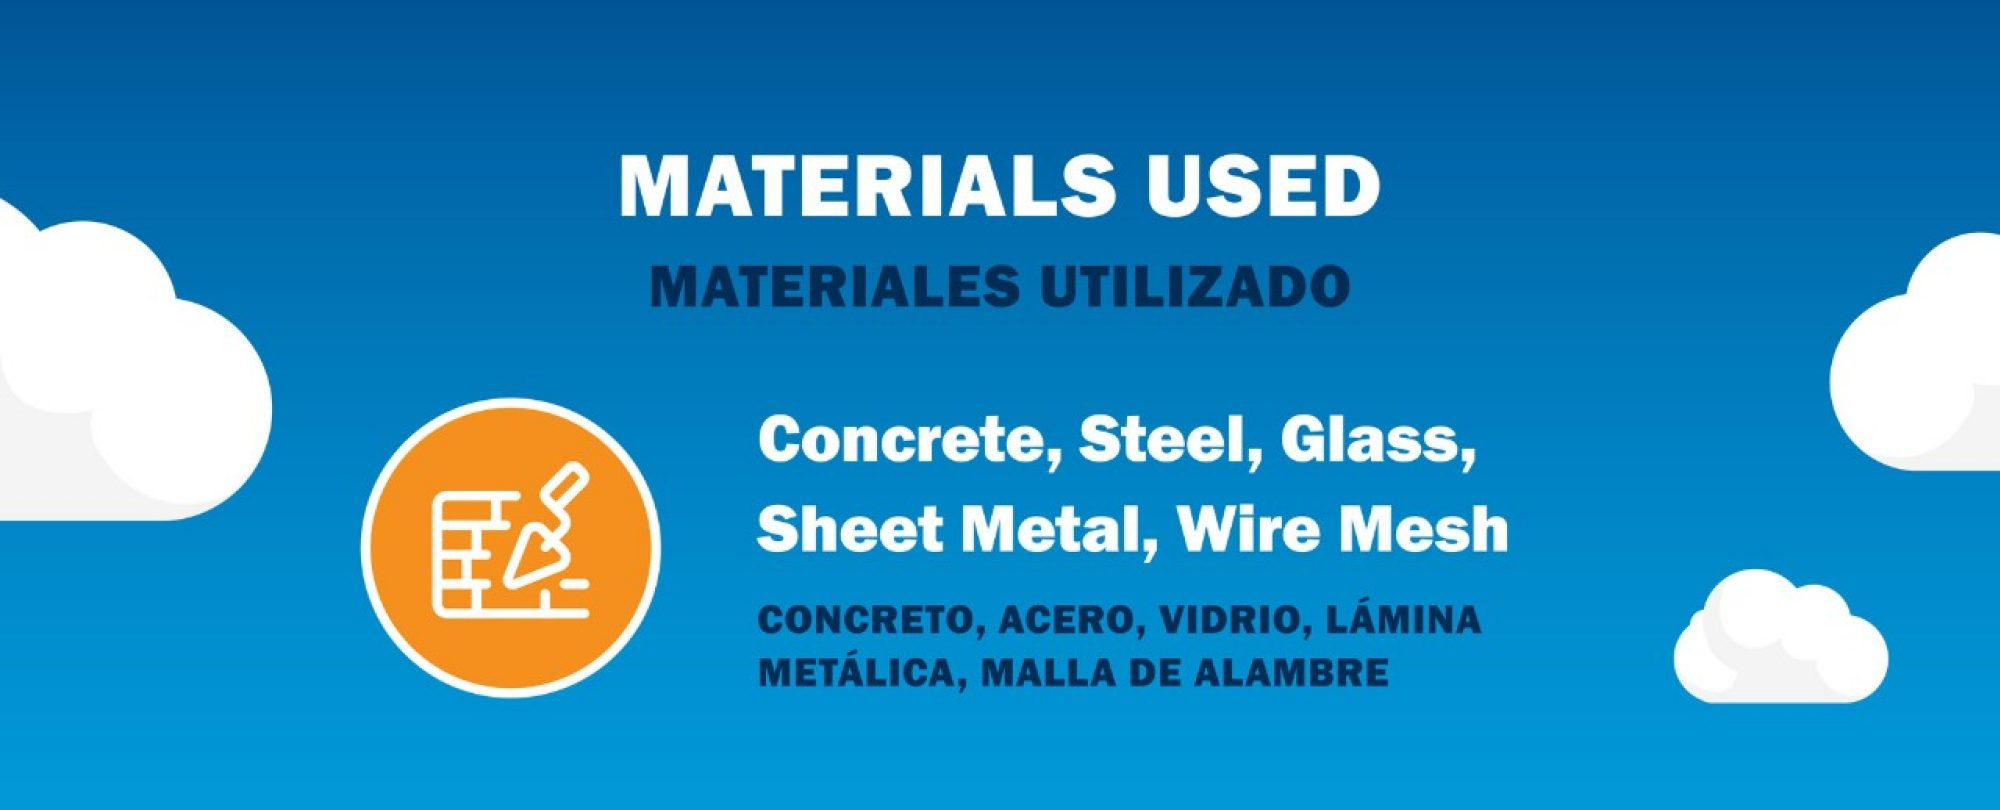 Materials used: concrete, steel, glass, sheet metal, wire mesh